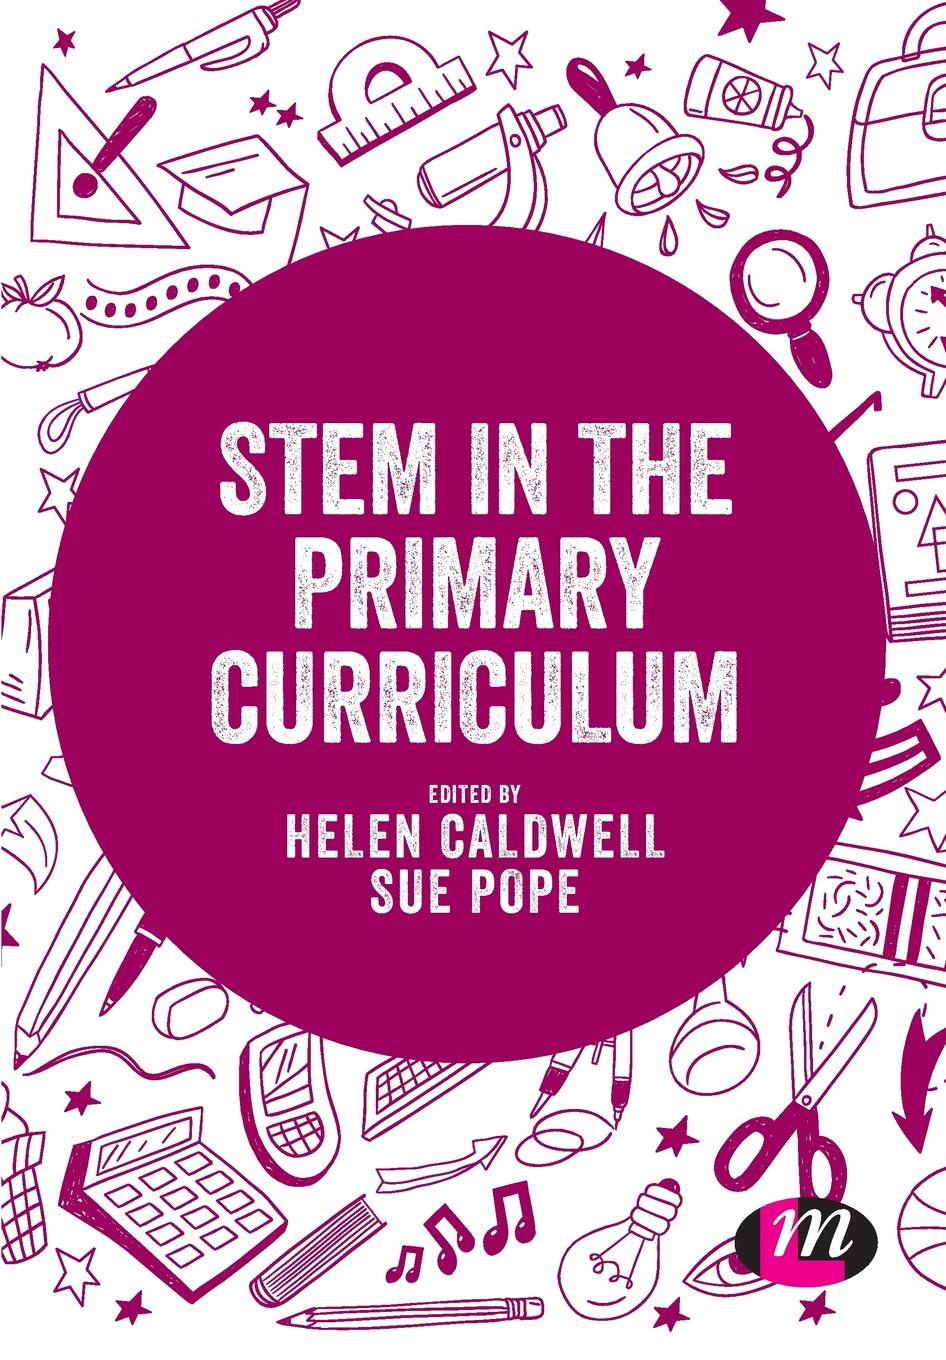 Helen Caldwell STEM in the Primary Curriculum curriculum